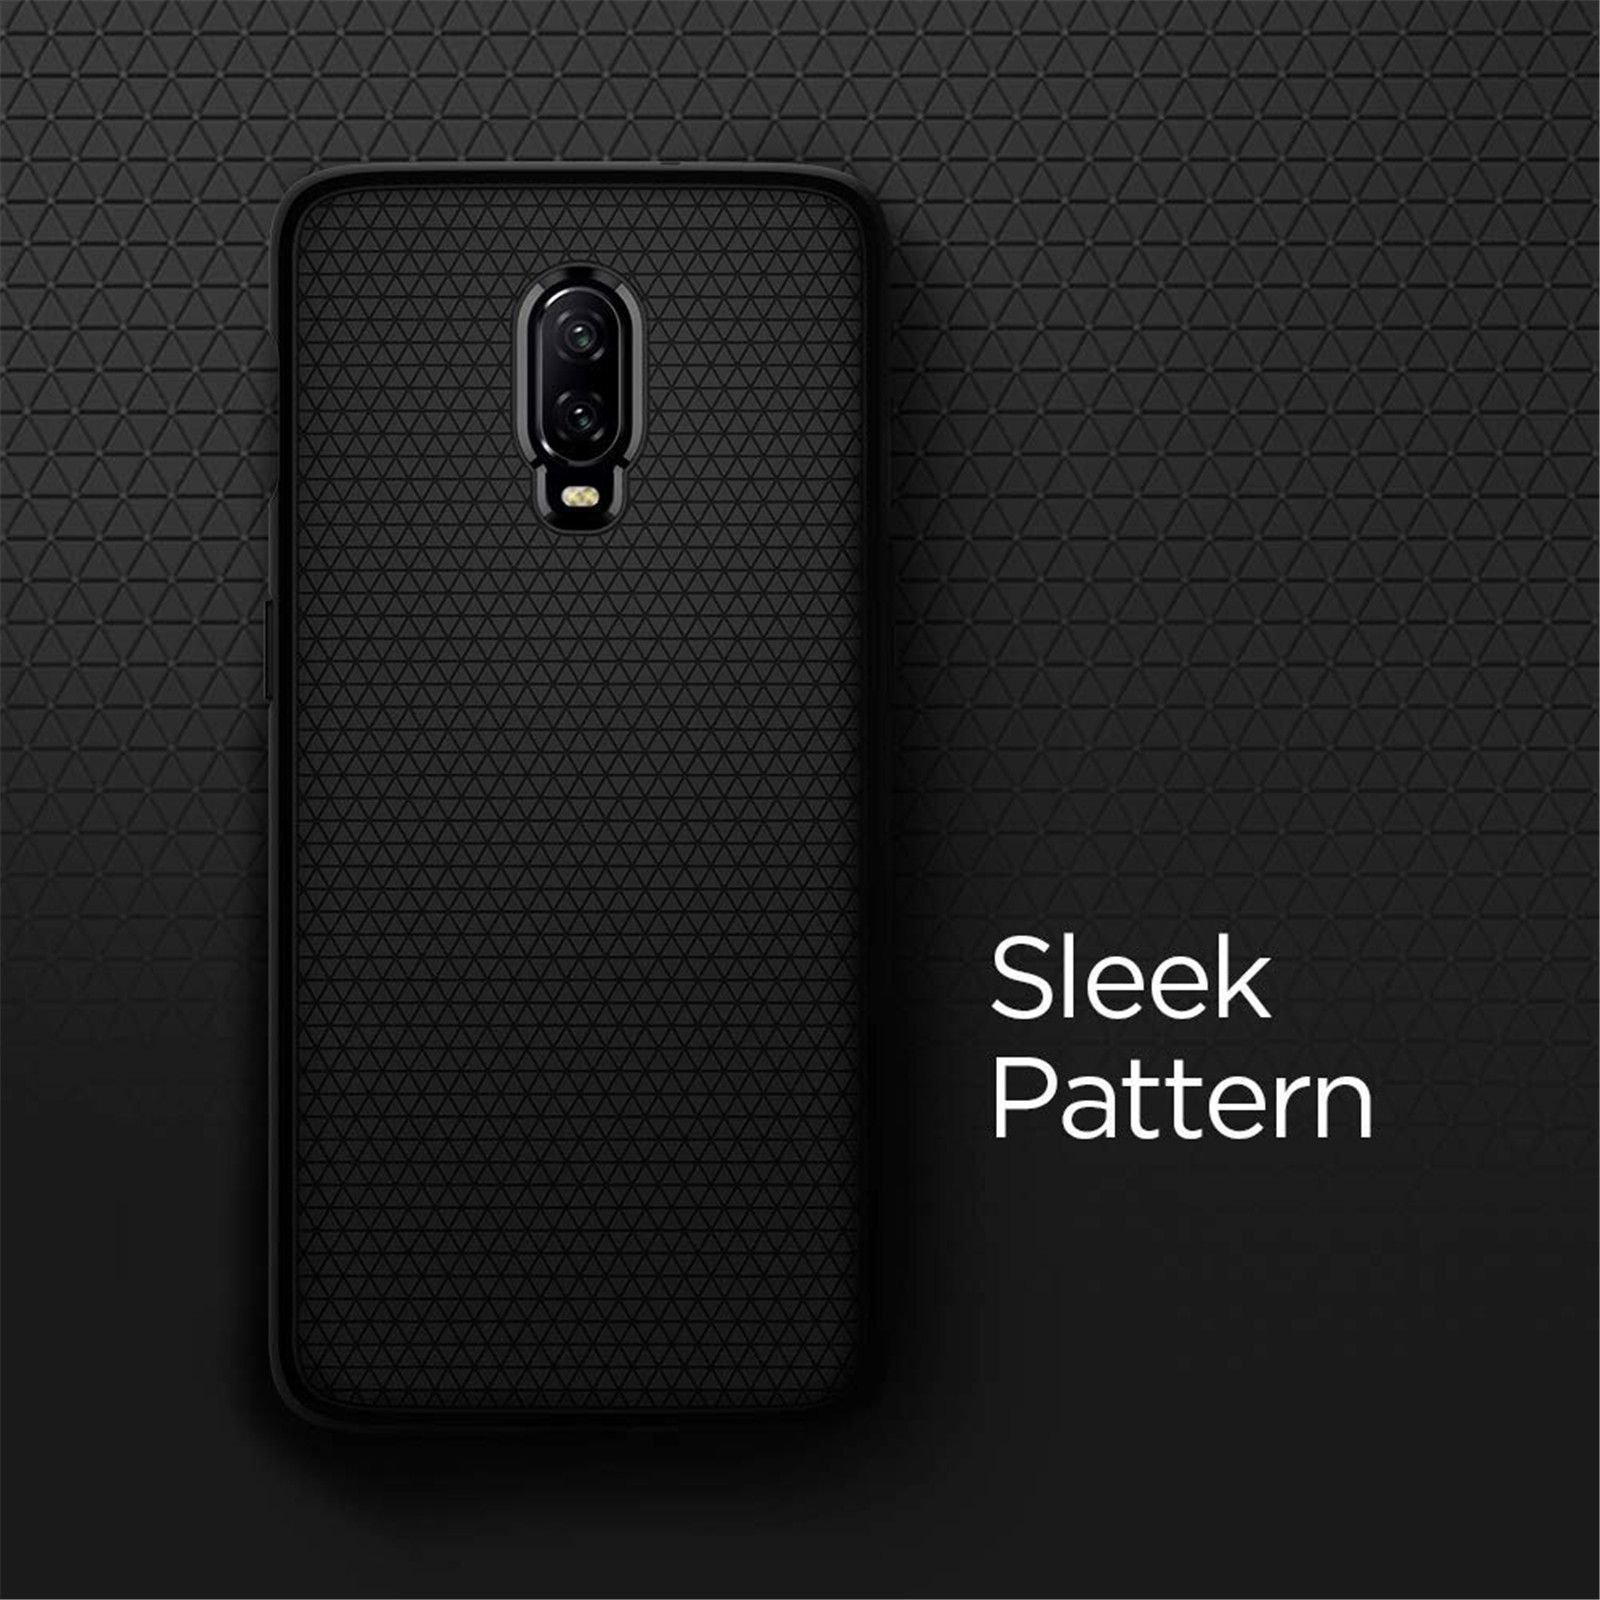 huge discount 2aaa2 92f03 Buy the Spigen OnePlus 6T Liquid Air Case Black,Slim, Form-fitted,  Lightweight... ( K07CS25308 ) online